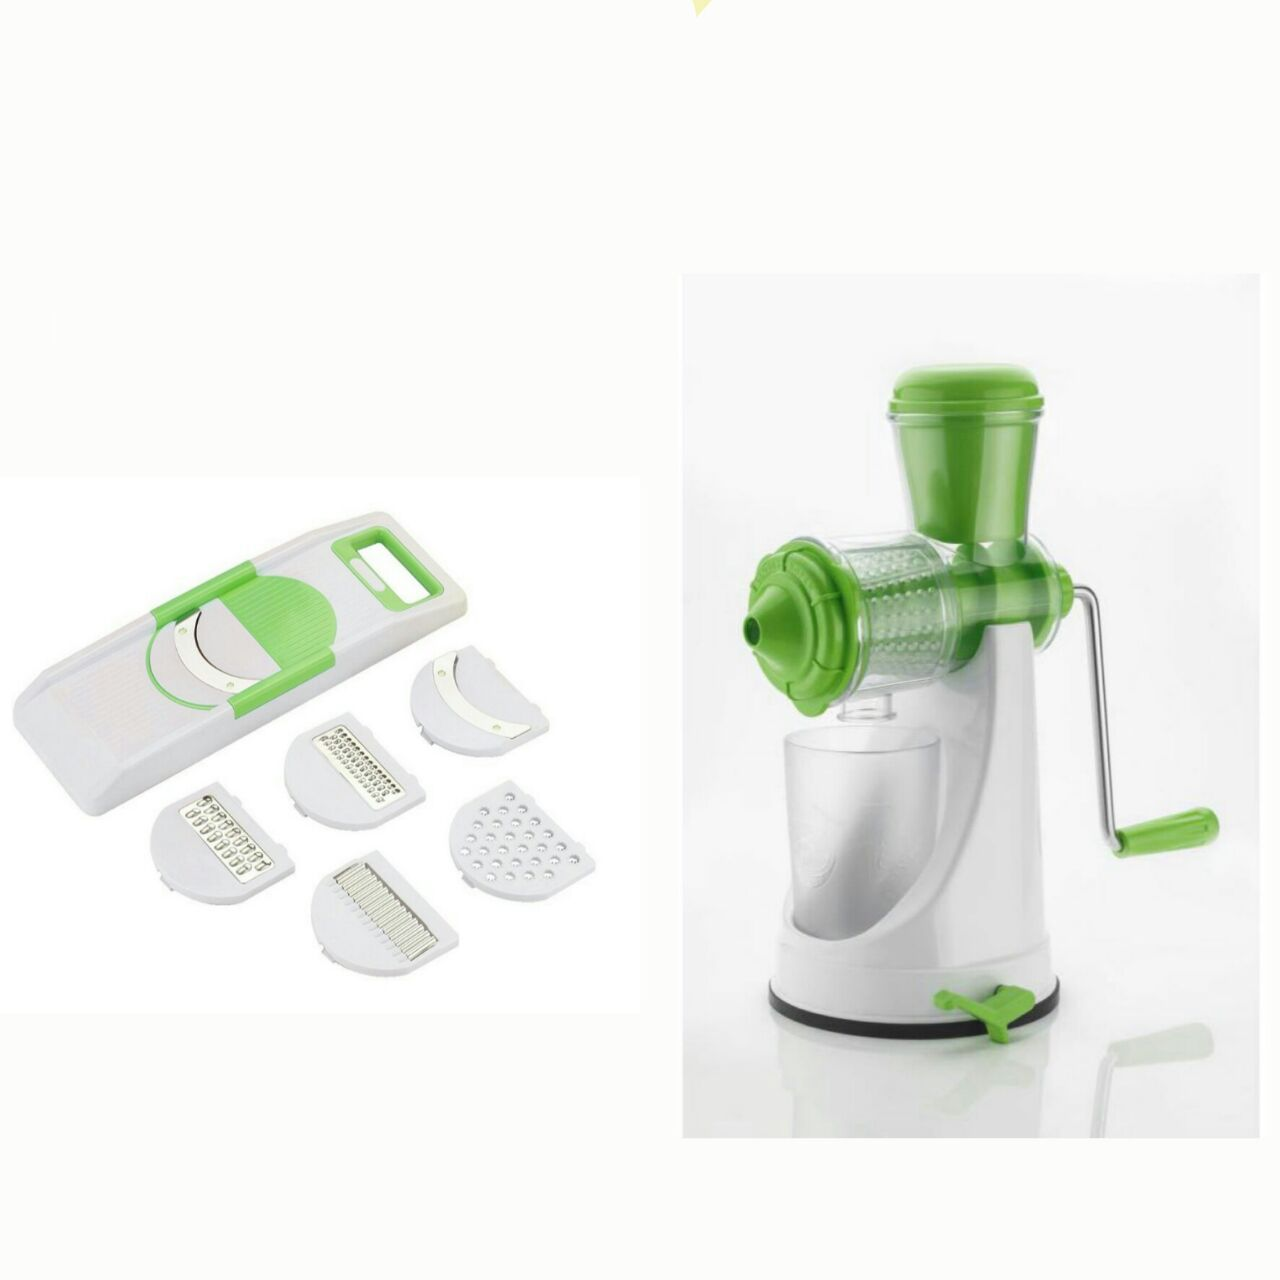 Best Combo Of Fruit Vegetable Premium Green White Manual Hand Juicer Mixer 6 In 1 Veg Slicer Grater Multi Purpose By STARDUST Buy